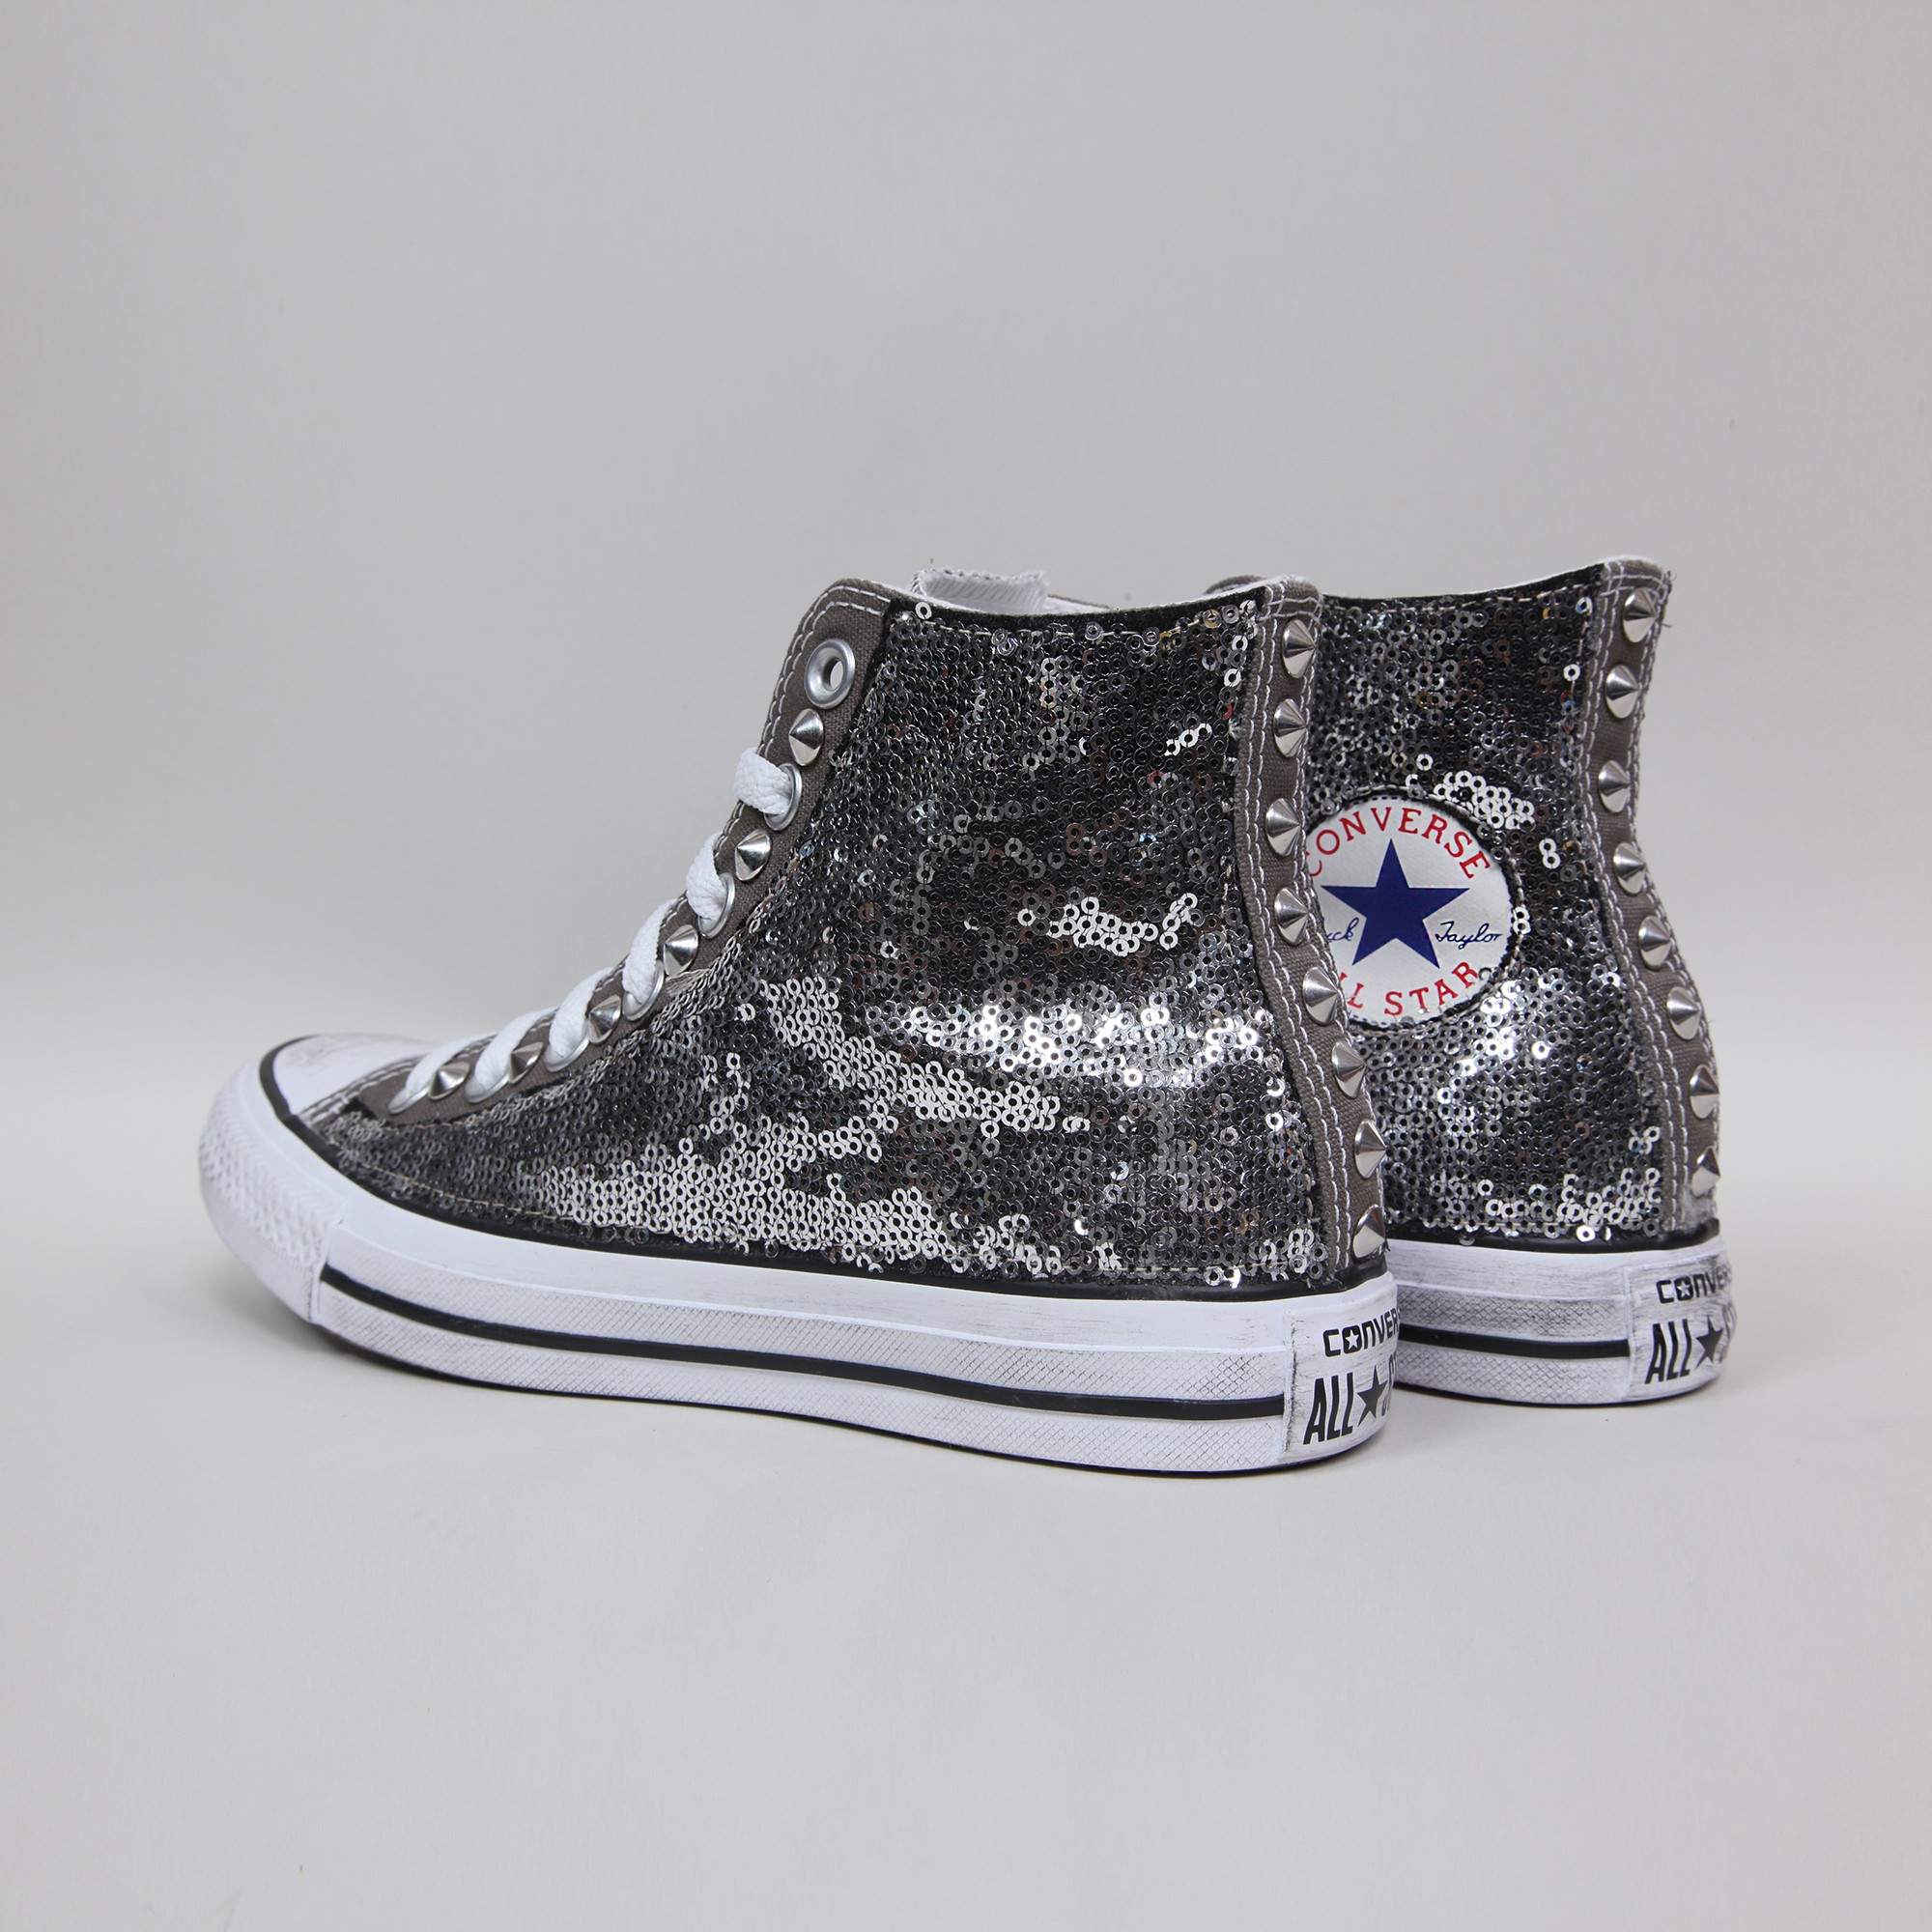 converse hi charcoal paillettes grigie paillettes converse. Black Bedroom Furniture Sets. Home Design Ideas